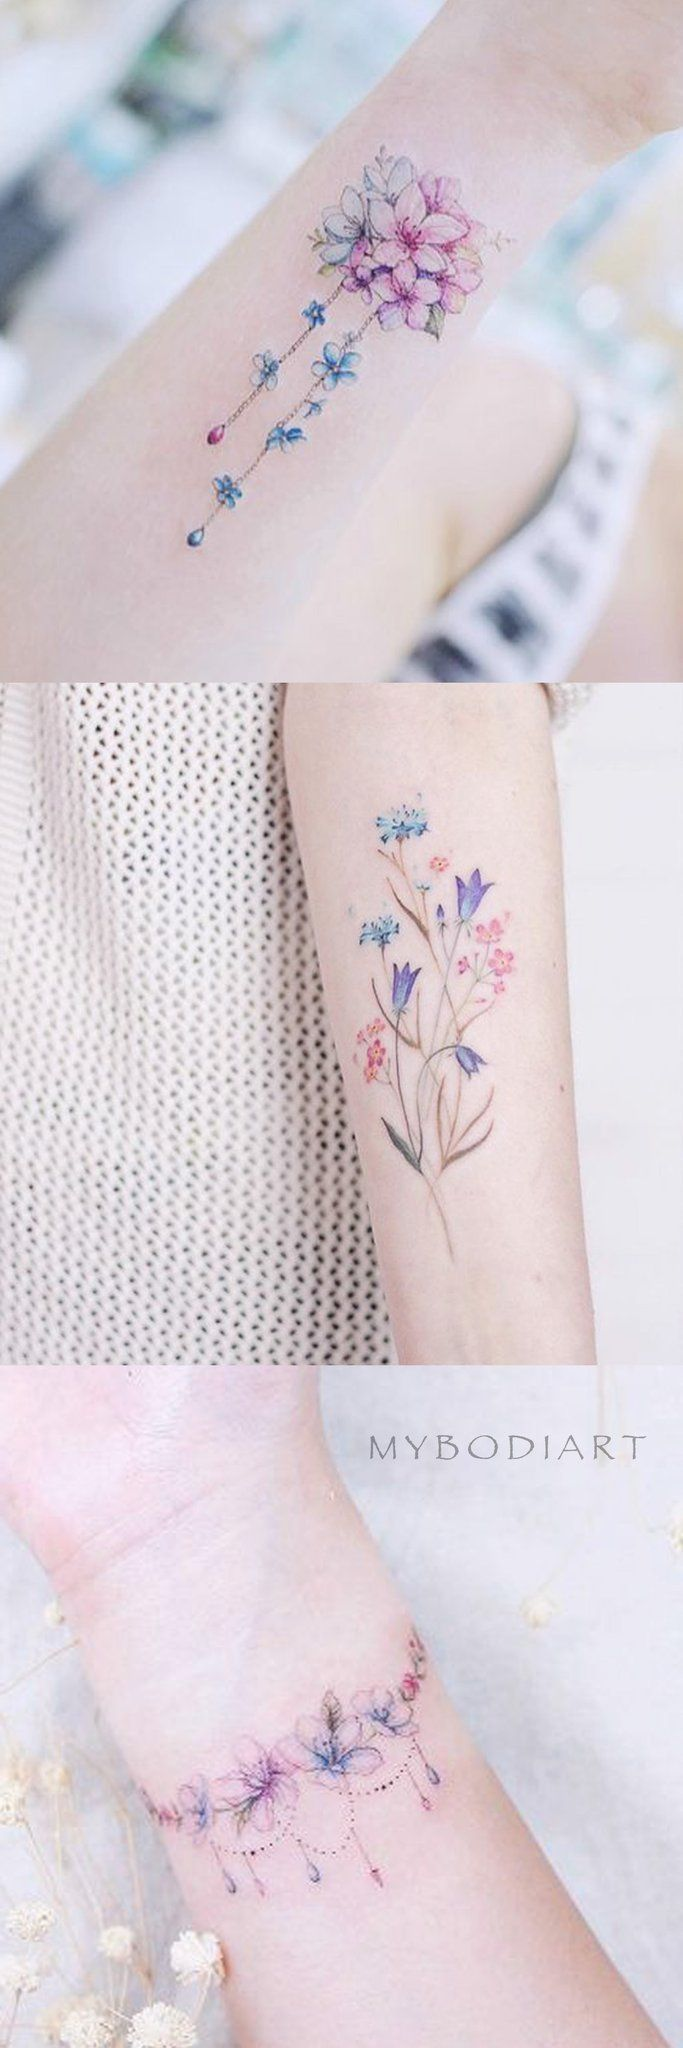 Cute Delicate Pretty Watercolor Floral Flower Arm Wrist Tattoo Ideas for Women – delicate floral flowers arm tattoo ideas for women – www.MyB …